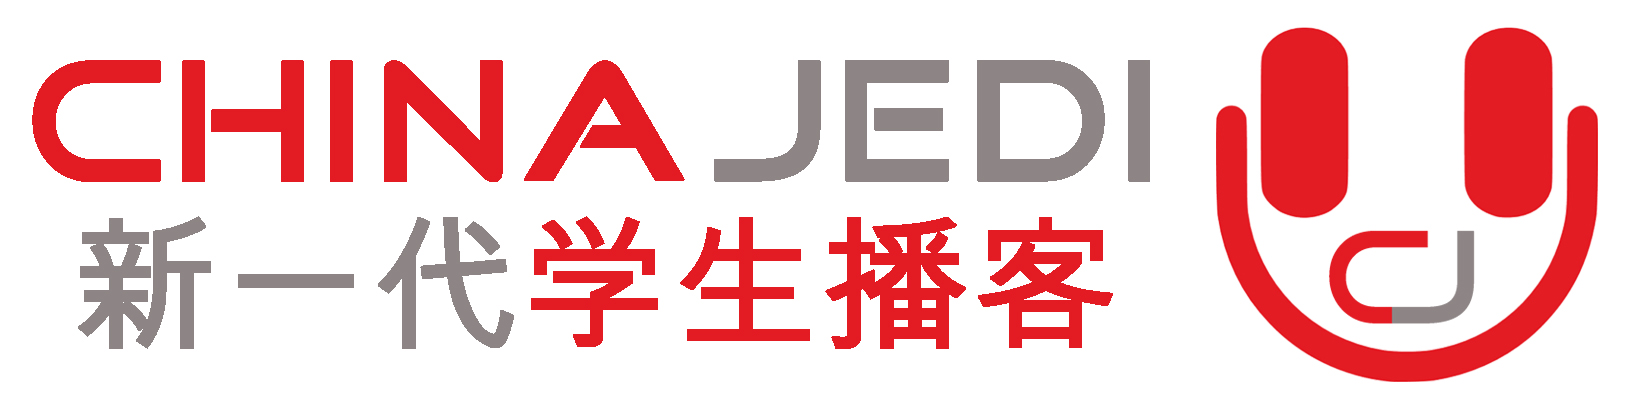 China Jedi Podcast – Shining Humour and Light on Chinese Life